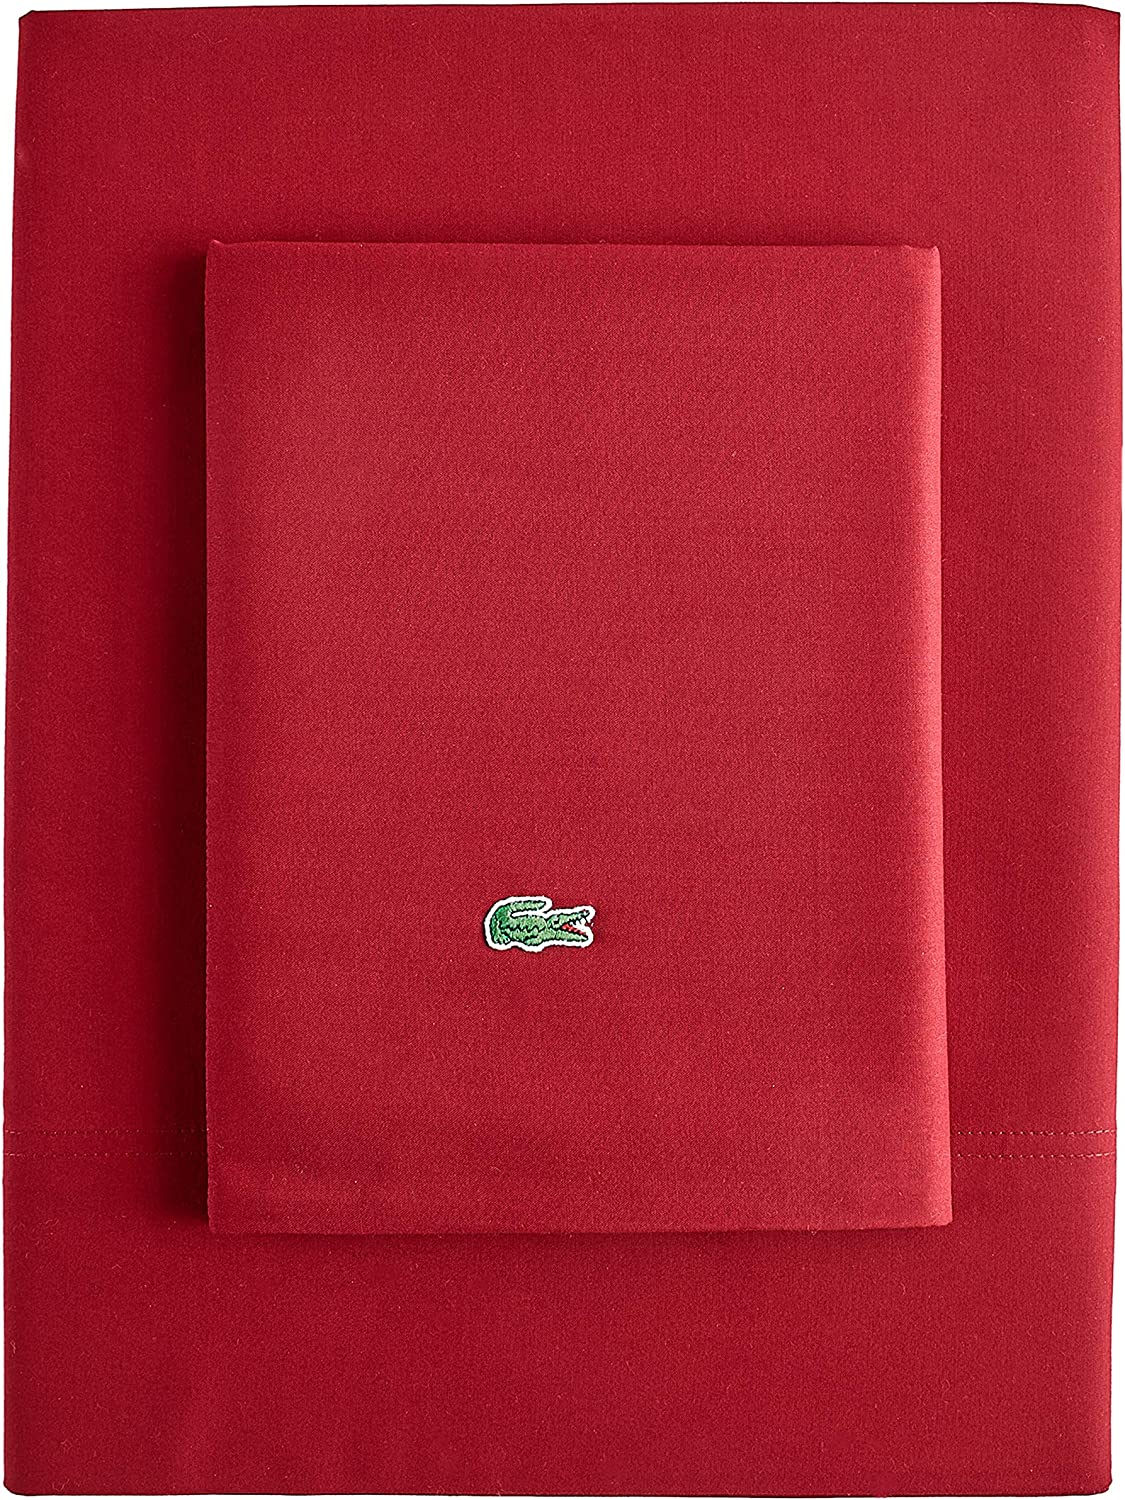 Lacoste Advantage Easy Care 4-Piece Sheet Set, King, Deep Red